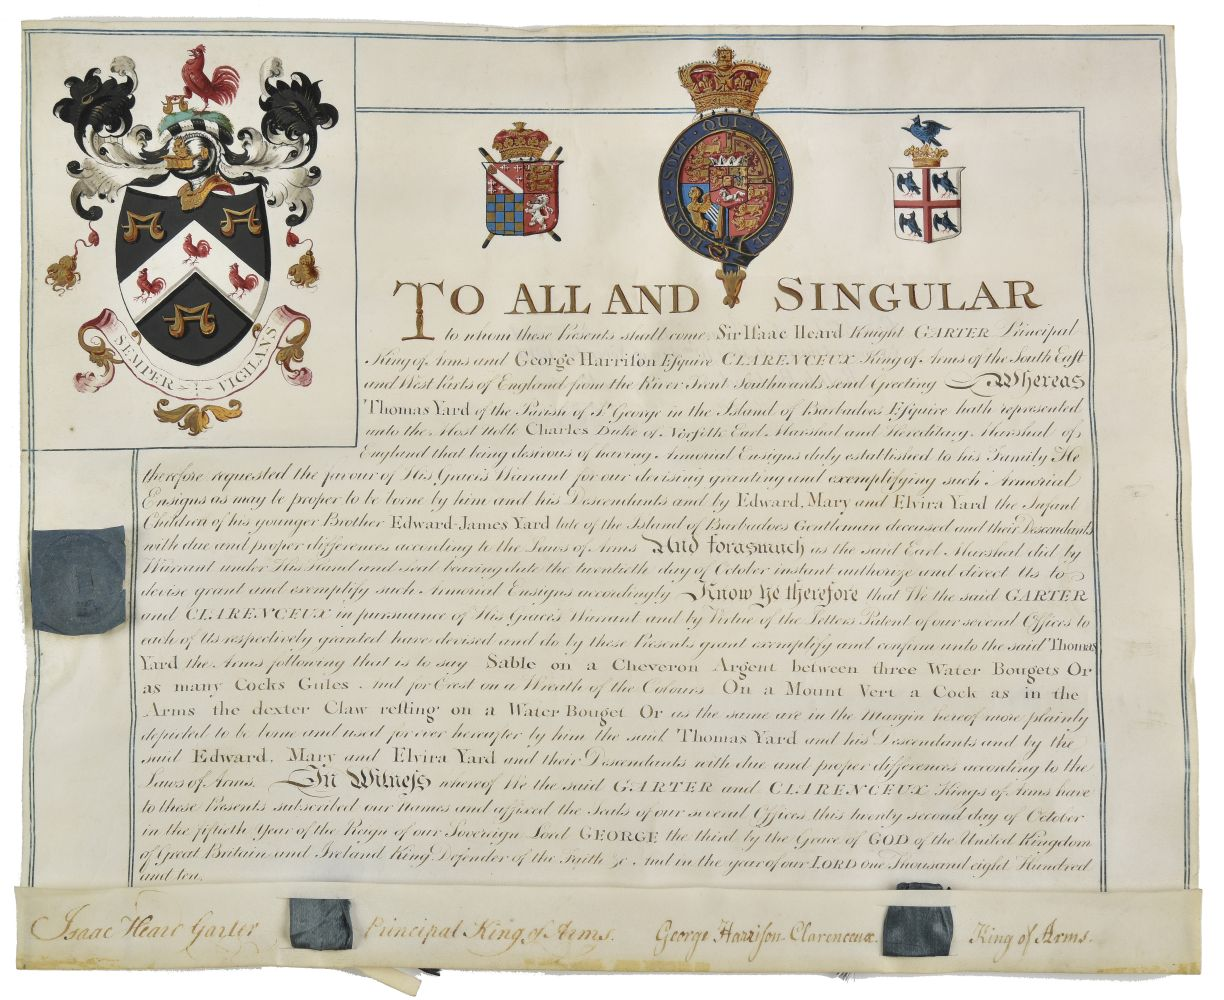 * Barbados. Grant of arms to Thomas Yard, 1810